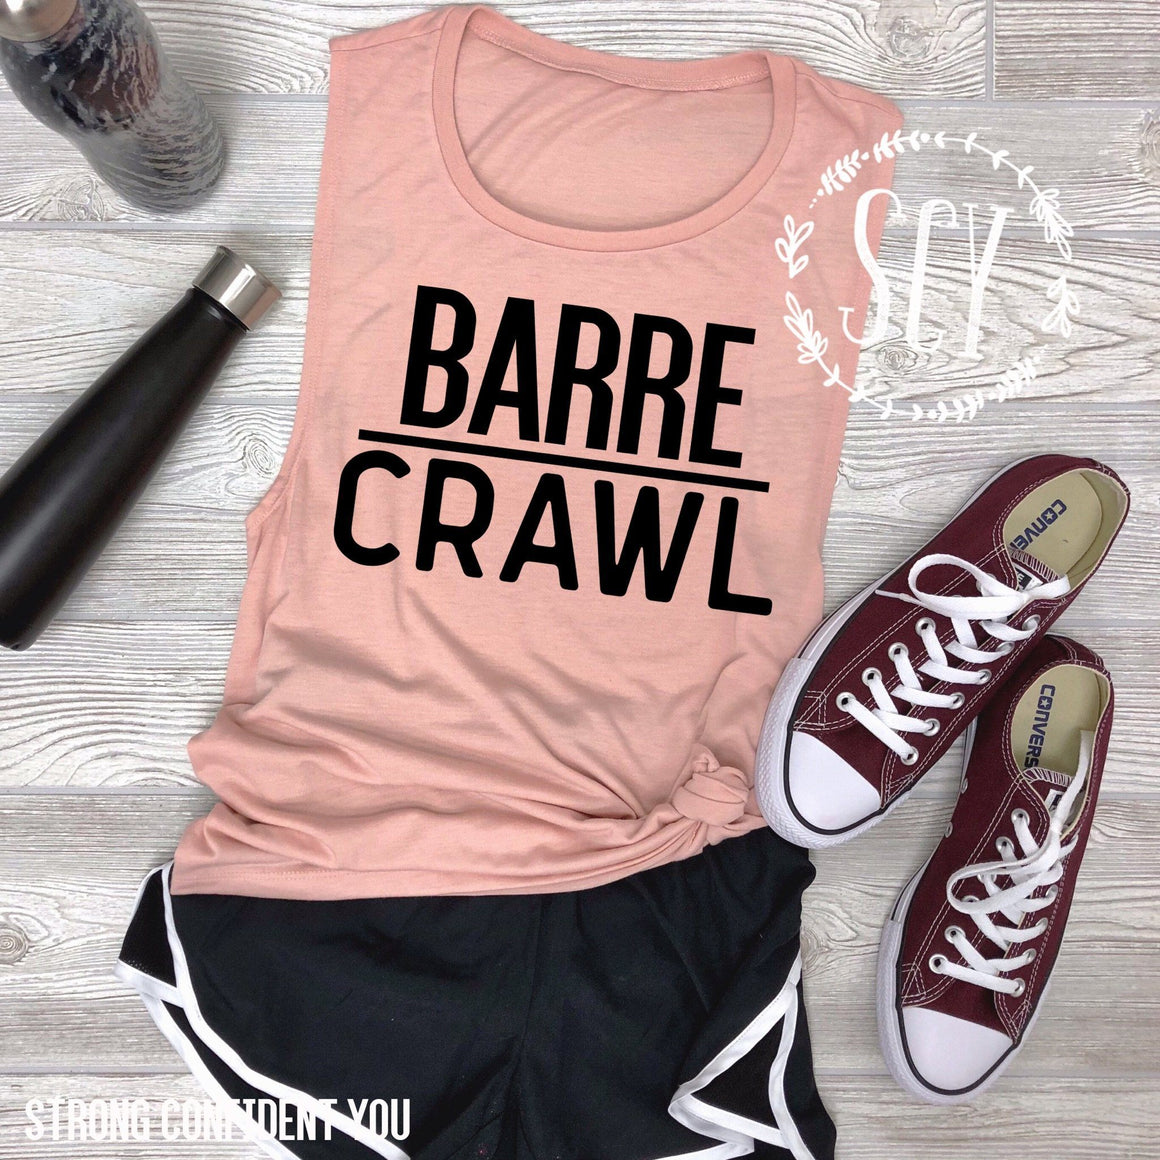 Barre Crawl - Strong Confident You